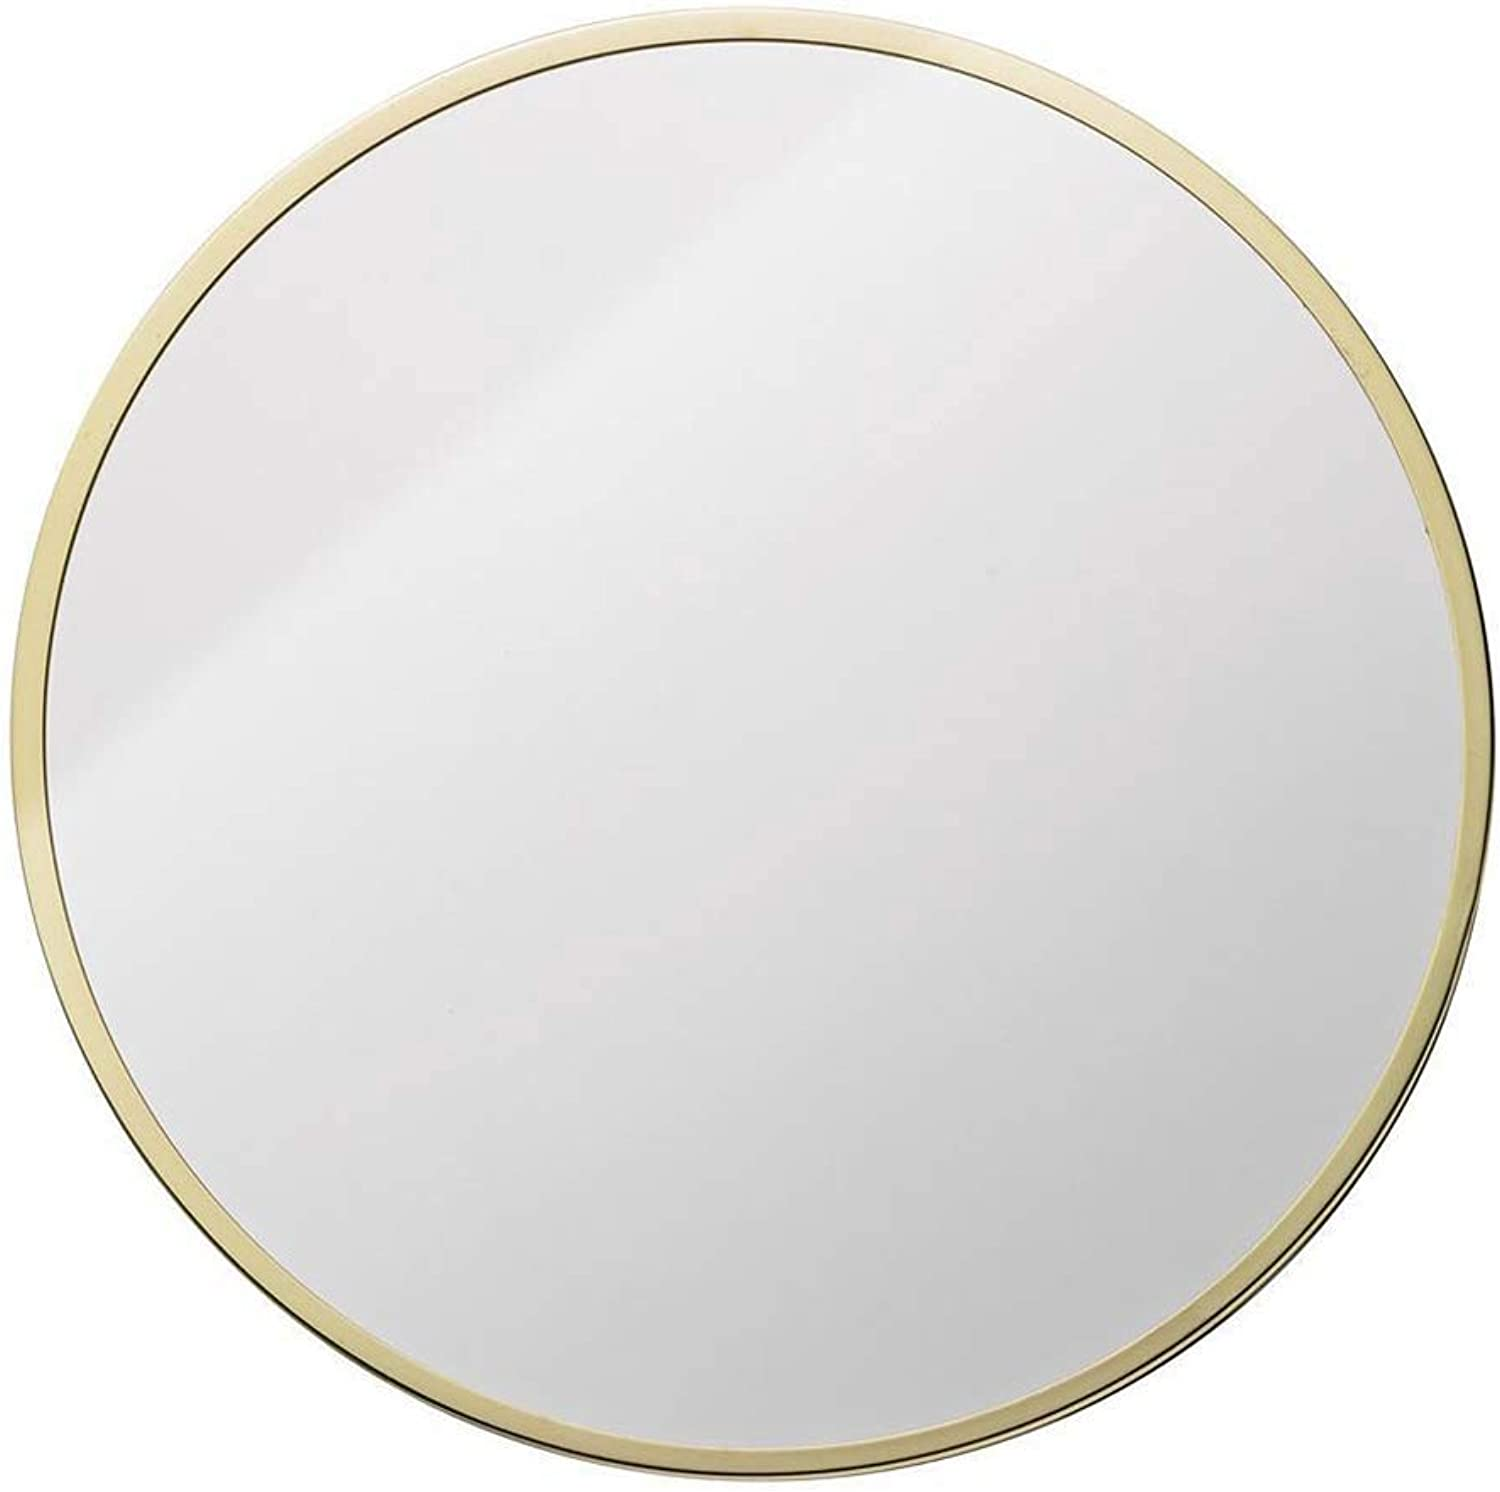 GXFC Contemporary Mirror - Round Wall Mounted Bathroom Vanity Mirror, Home Bedroom Metal Frame, Nordic Minimalist Style